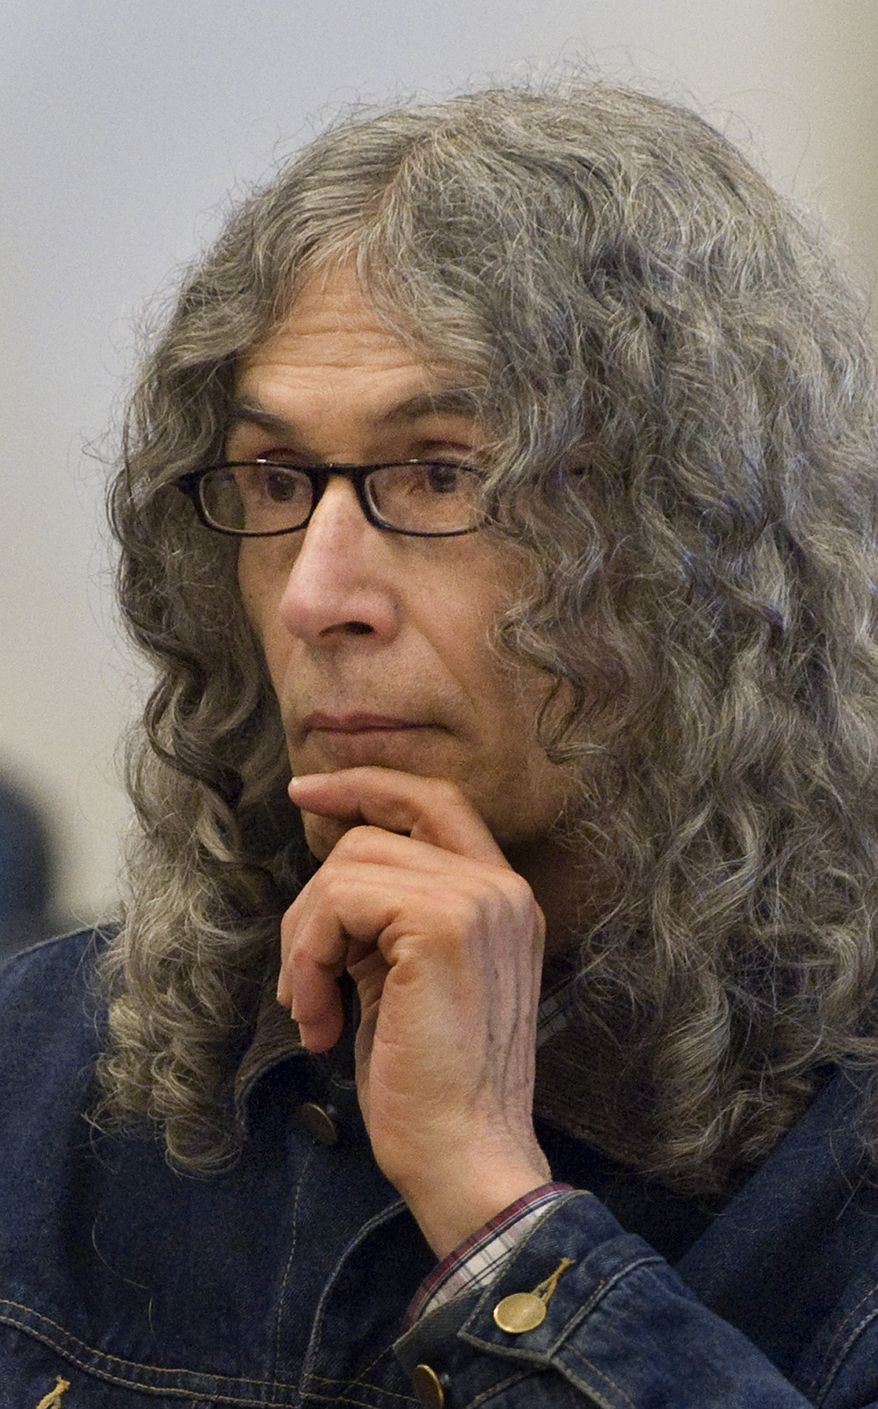 ** FILE ** Convicted serial killer Rodney Alcala listens as victim-impact statements are read in a Santa Ana, Calif., courtroom in March 2010. (AP Photo/Michael Goulding, Pool)